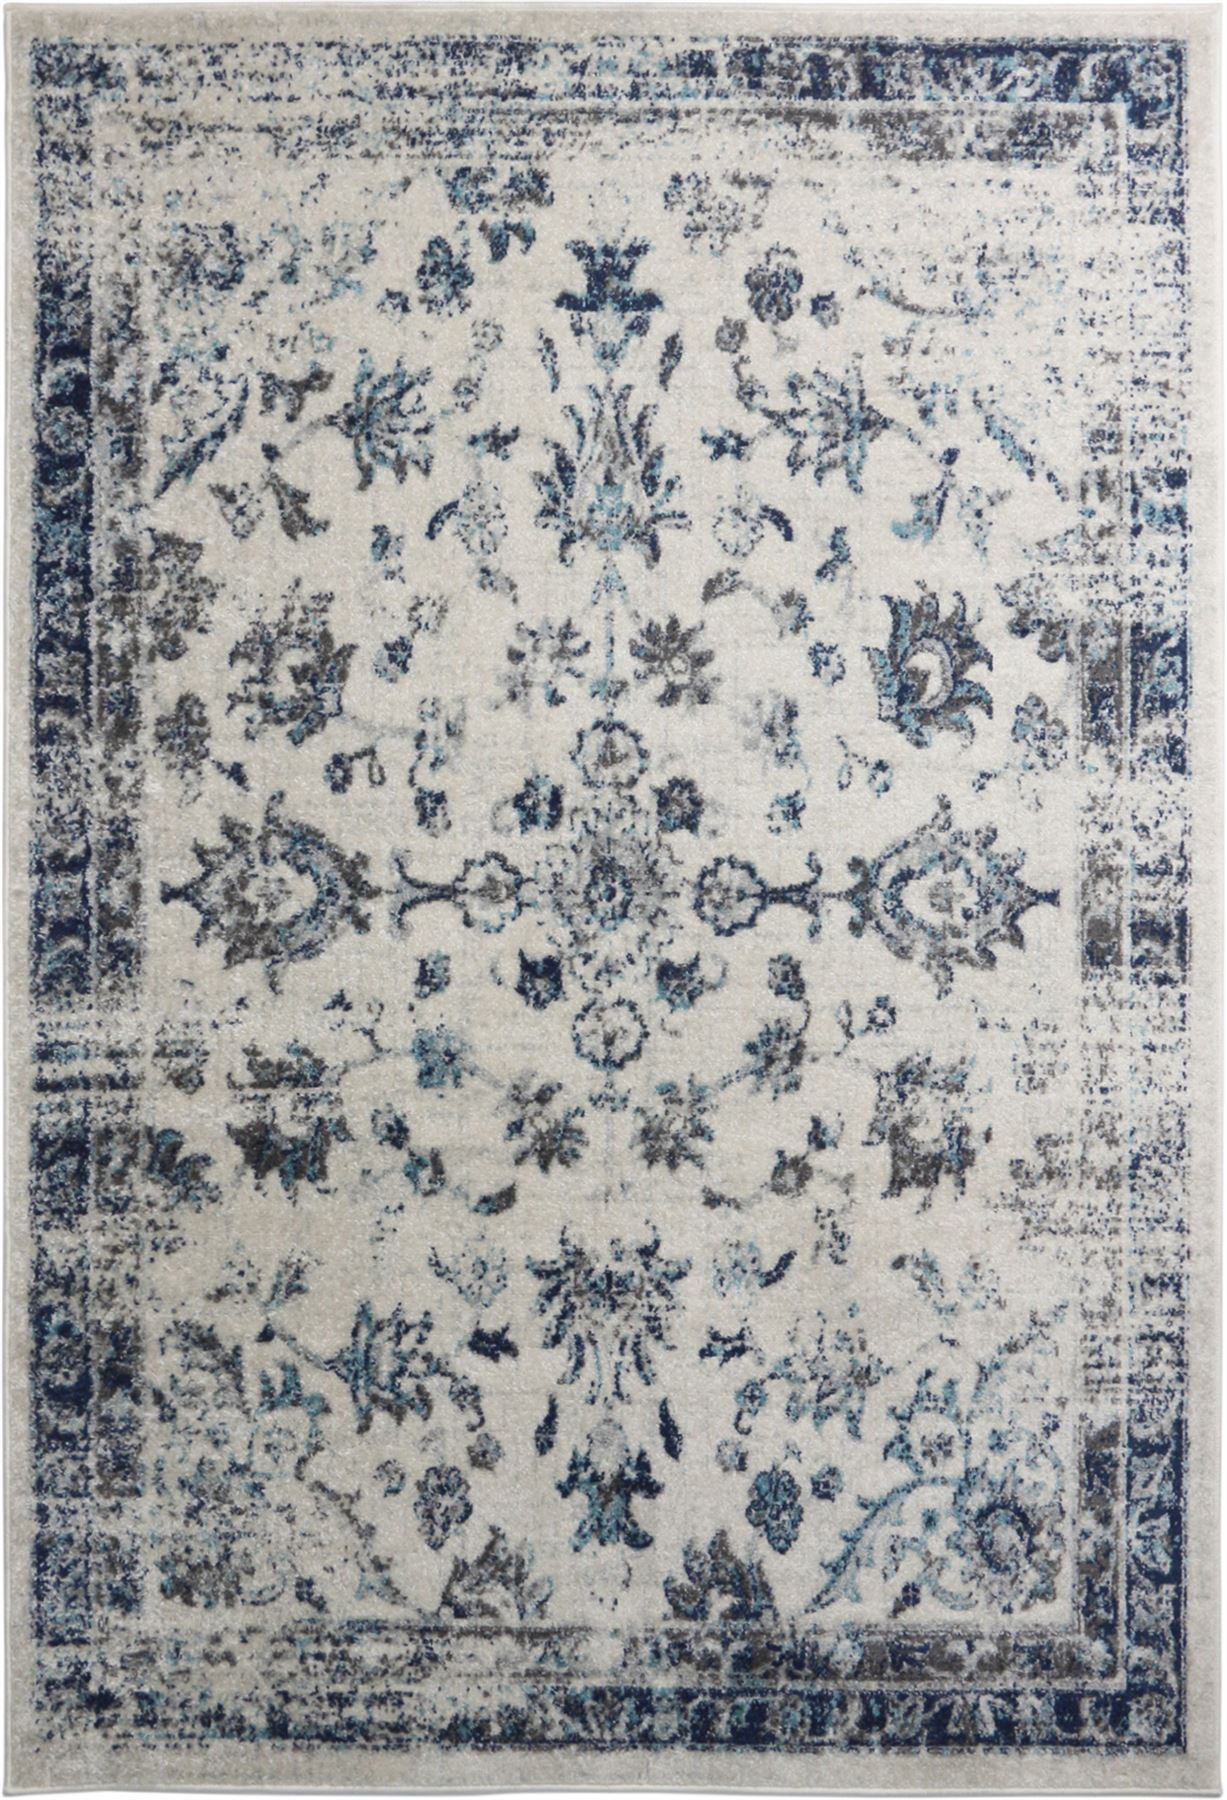 Large-Quality-Traditional-Area-Rug-Assorted-Persian-Floral-Designs-Carpet-Runner thumbnail 35